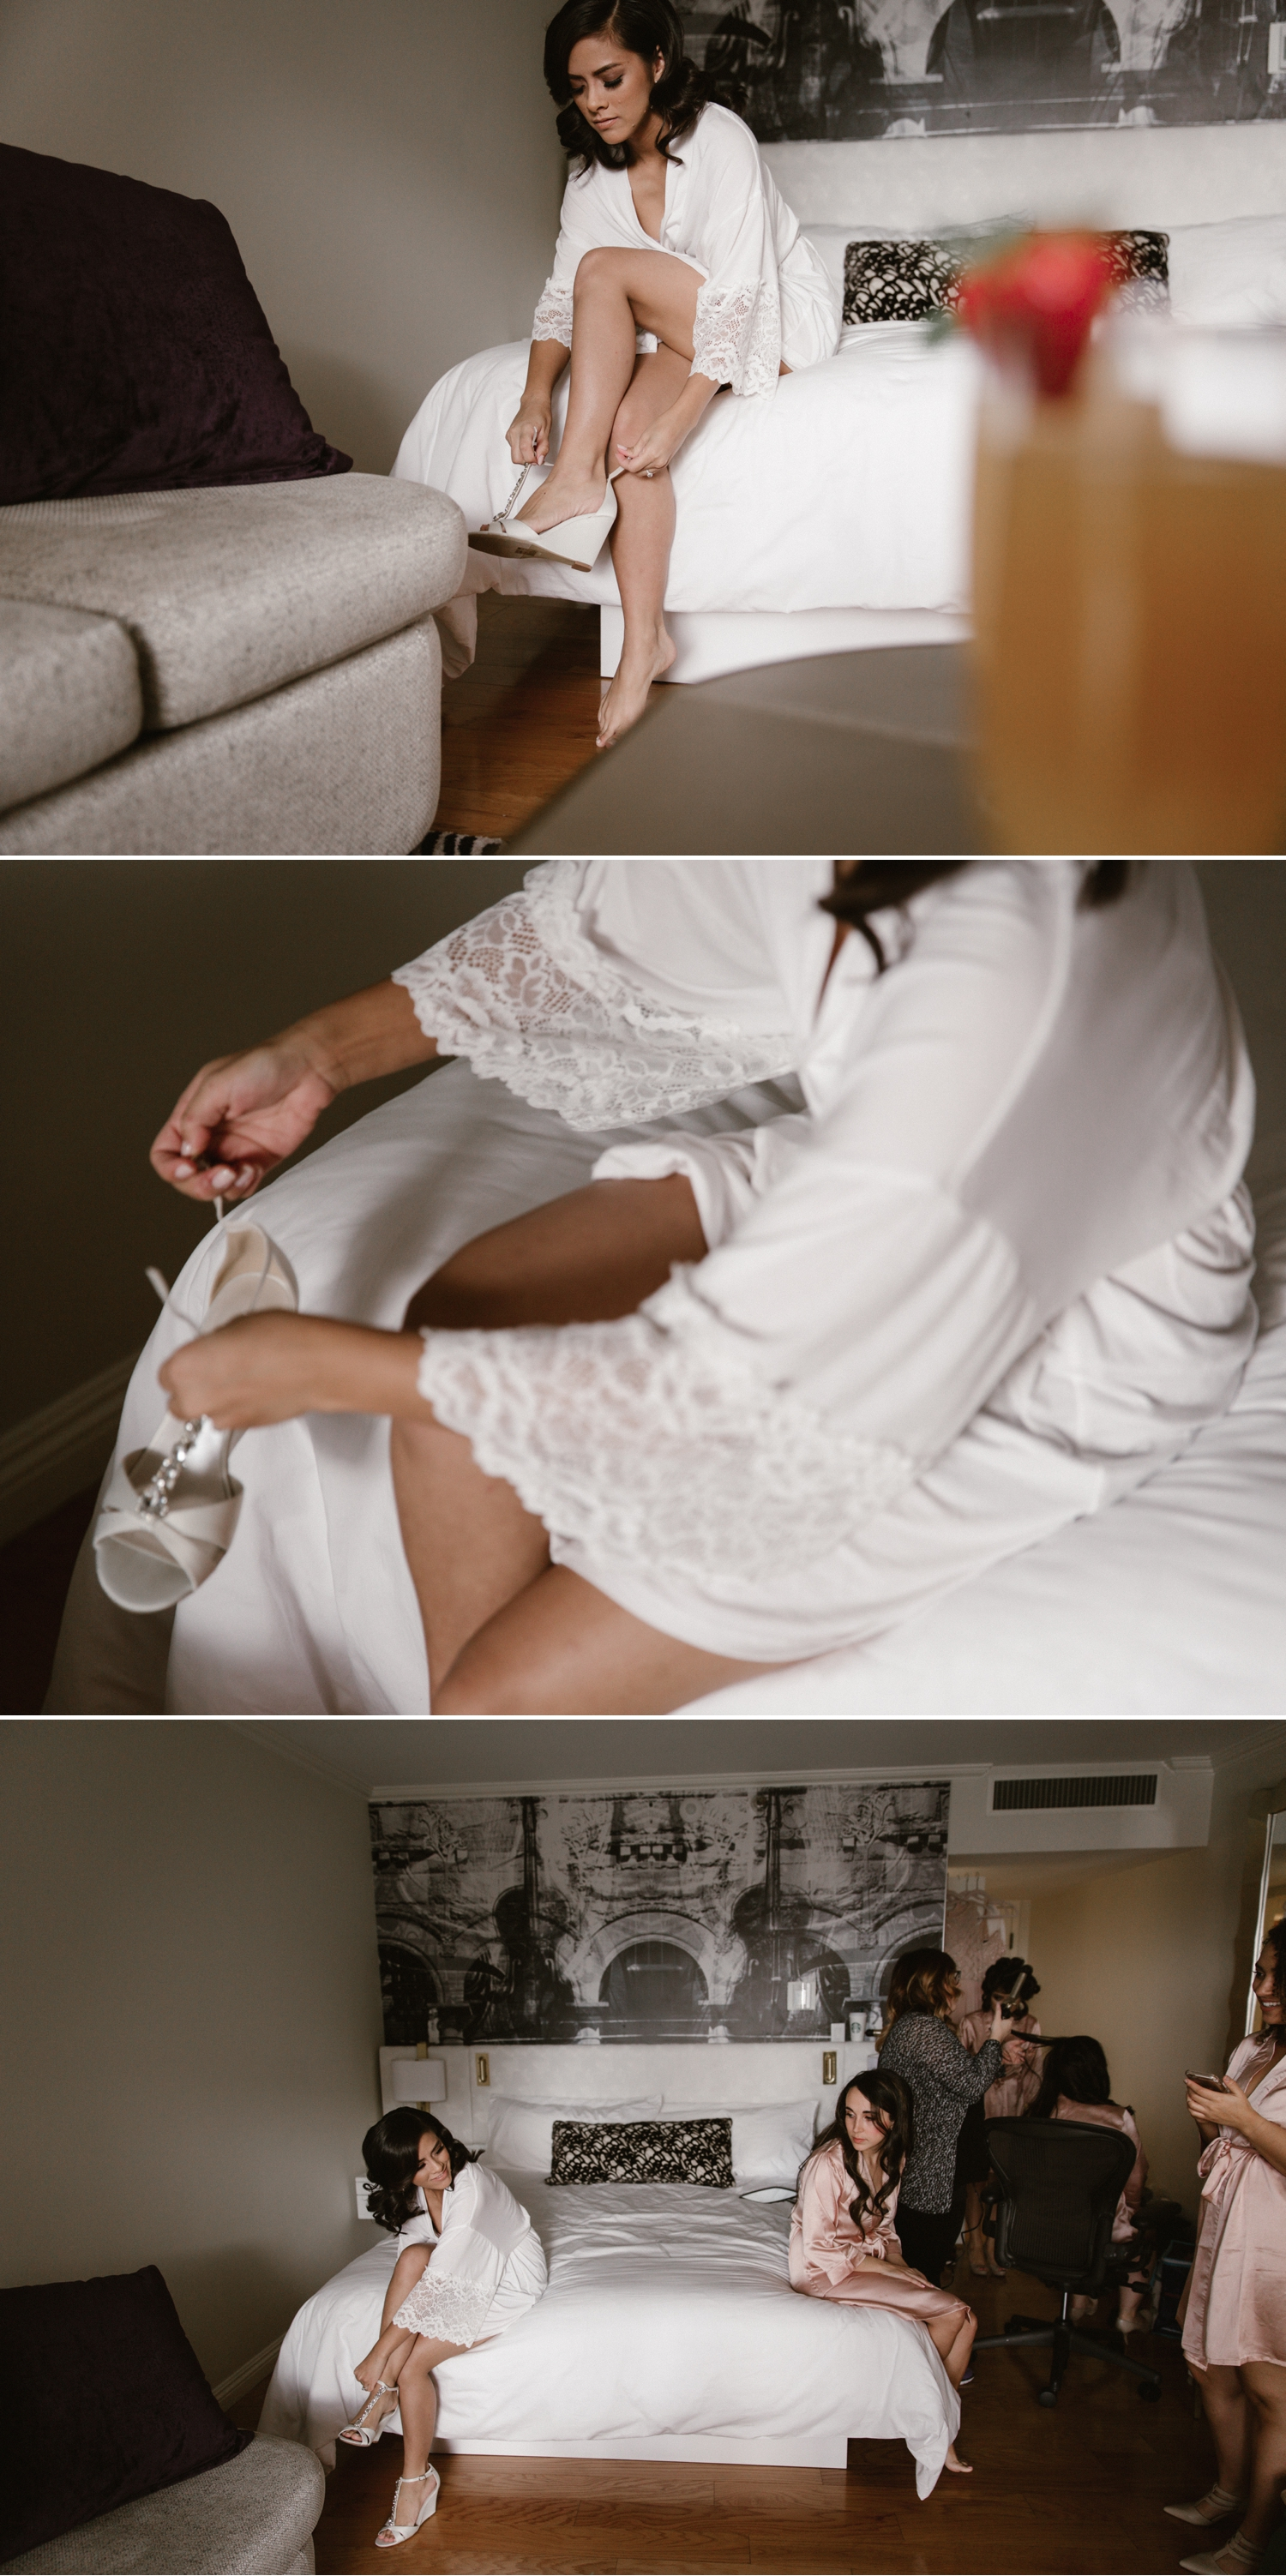 Bridal preparation at Avenue of the Arts in Santa Ana by Paige Nelson